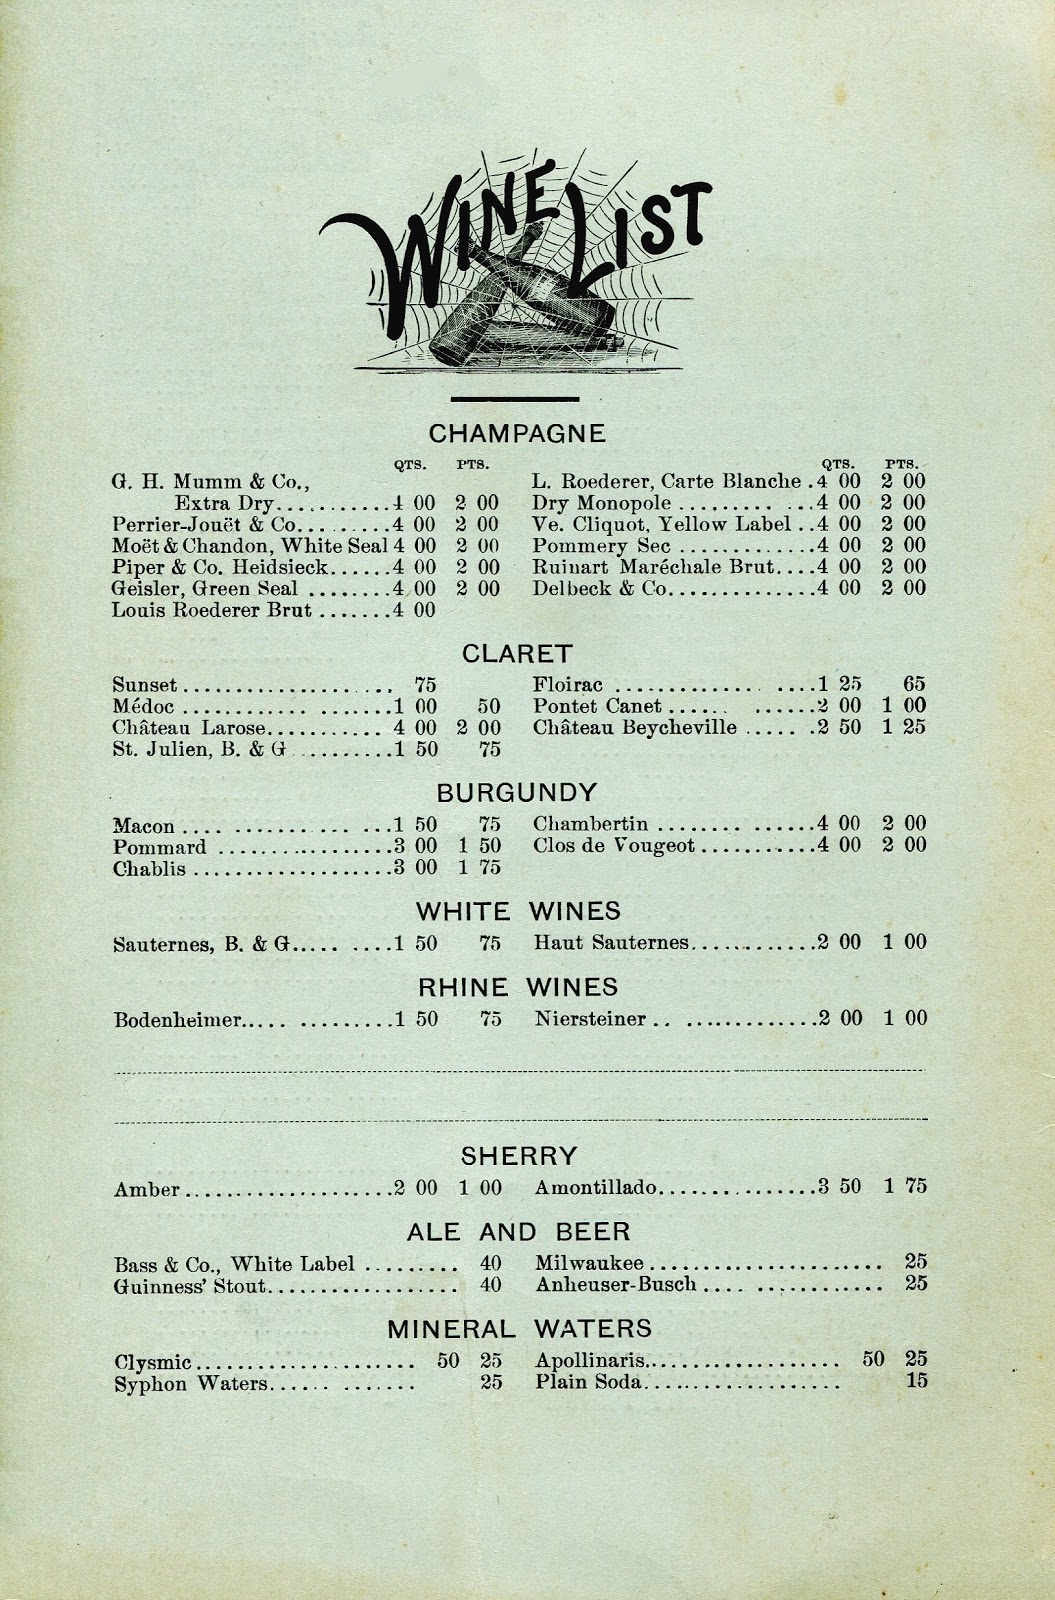 The Hudson Room Menu